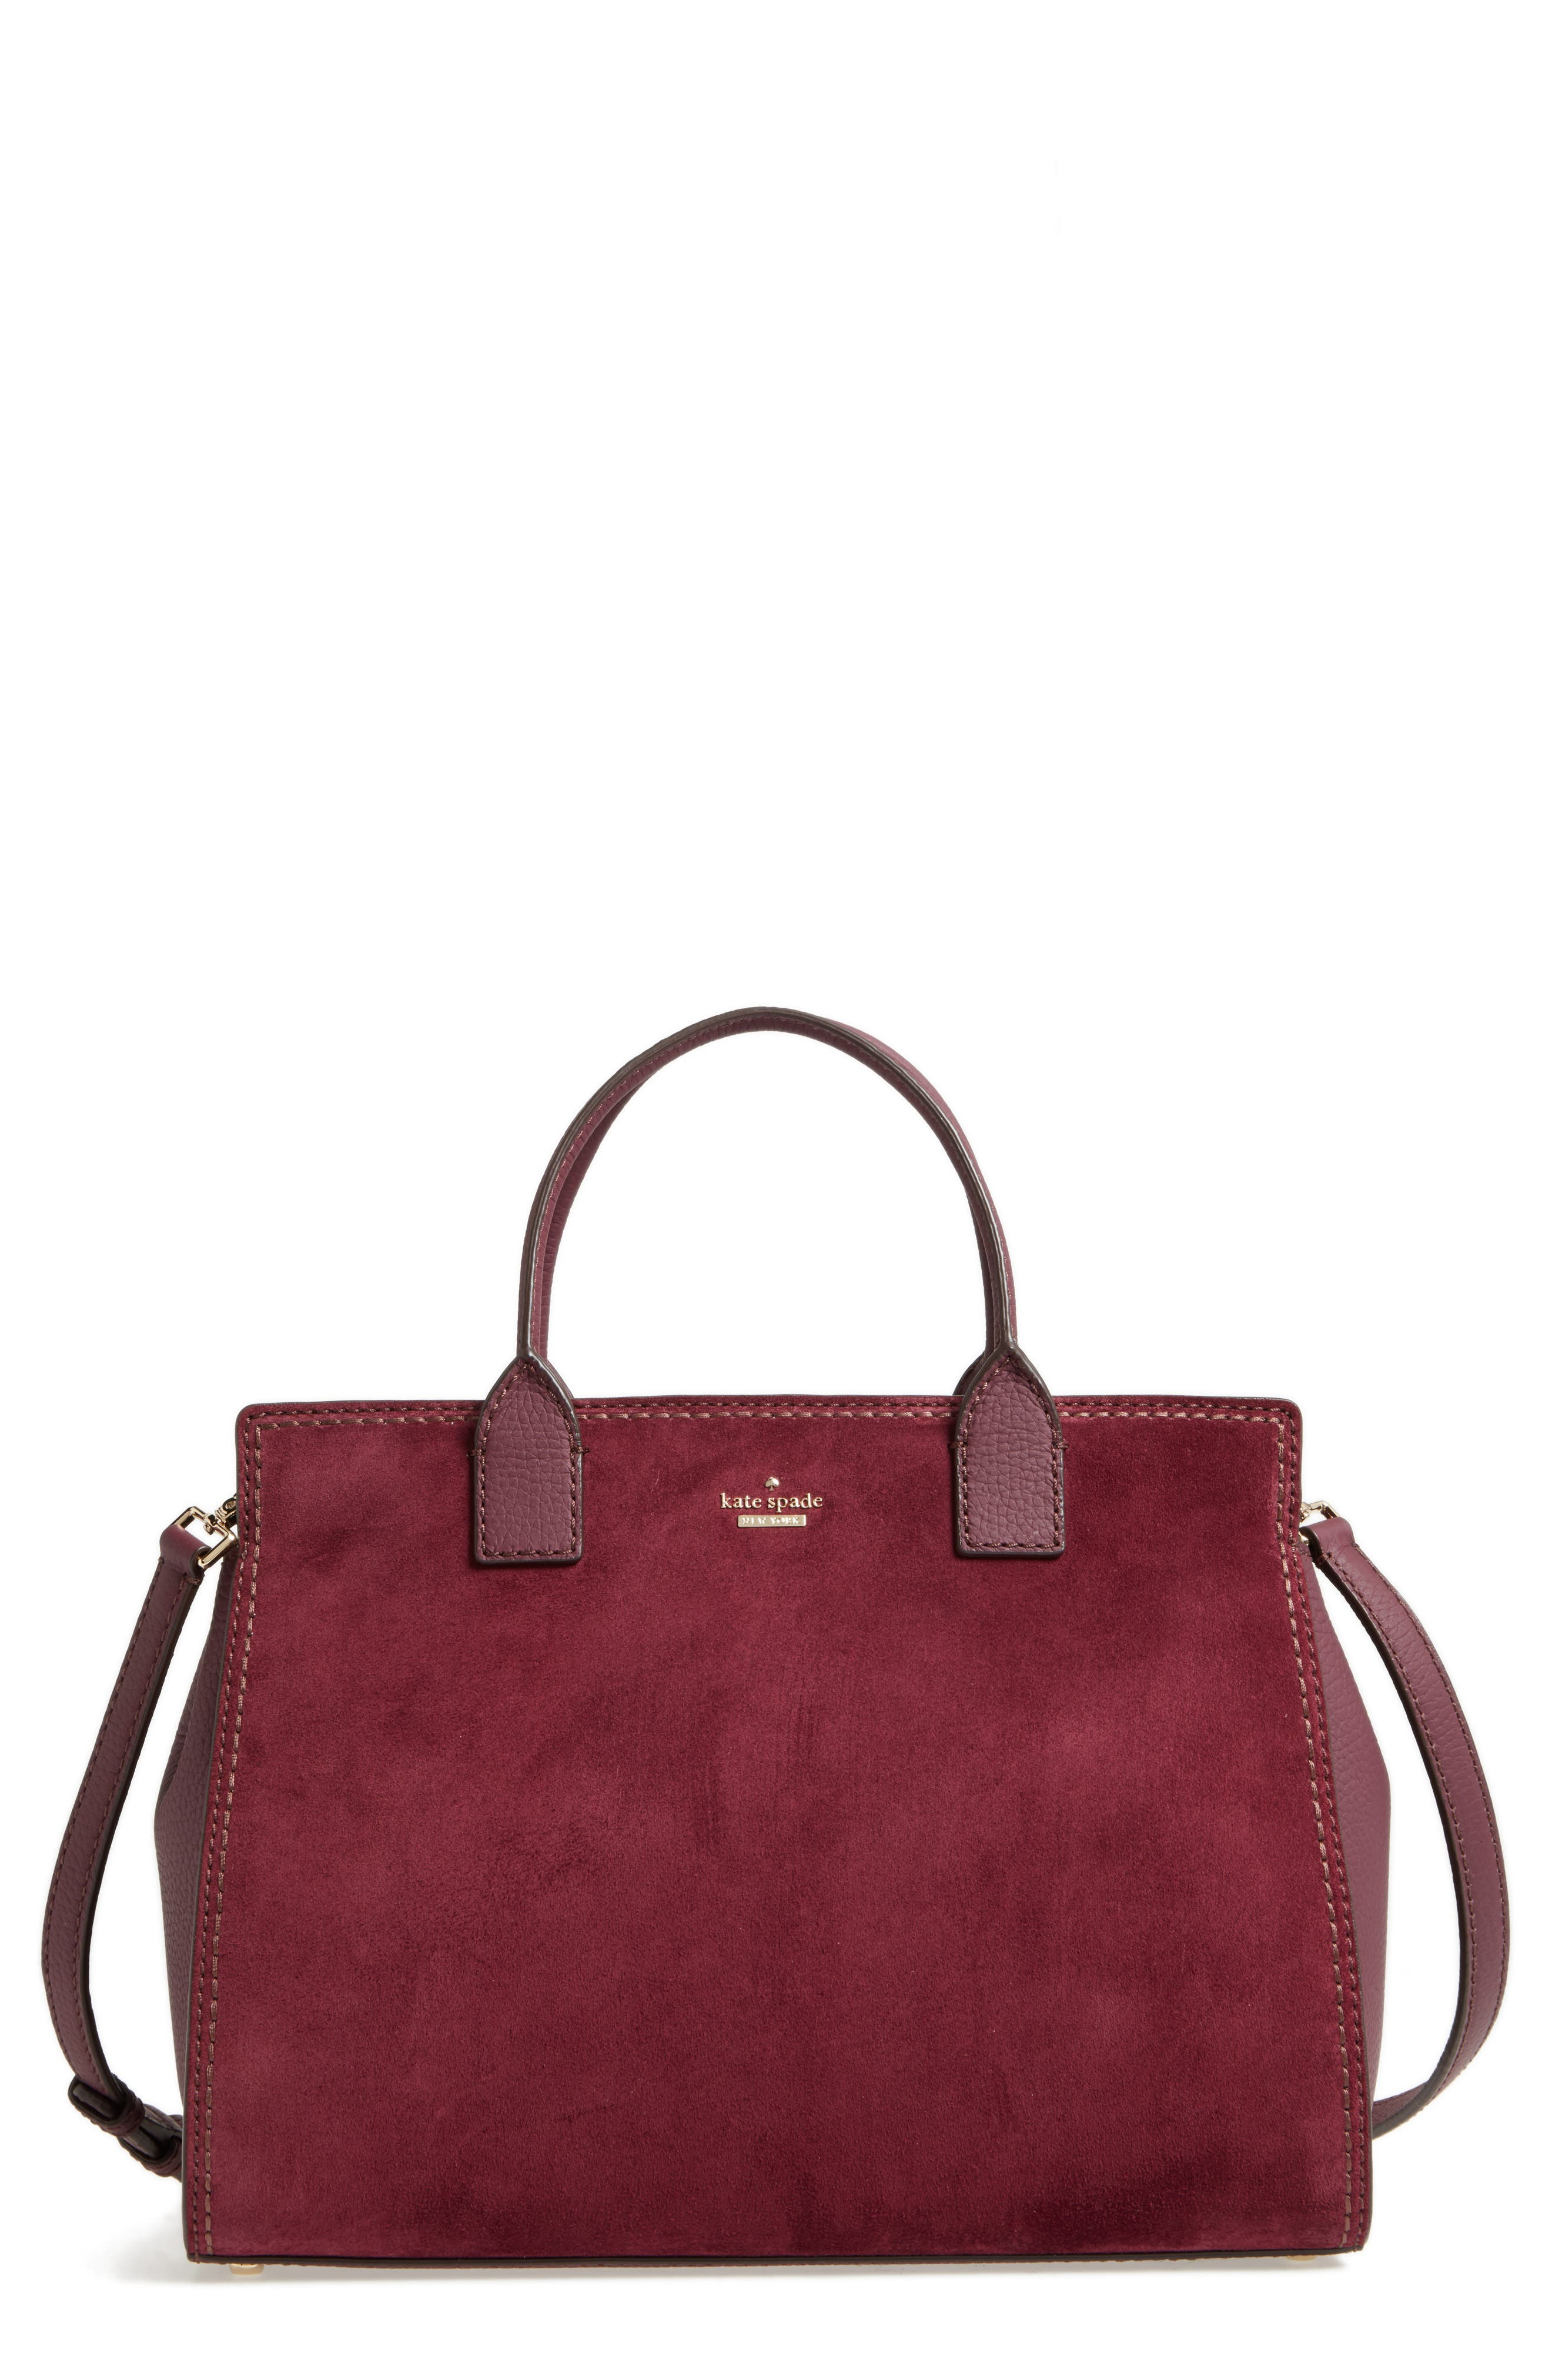 dunne lane lake suede satchel,                         Main,                         color, Deep Wine